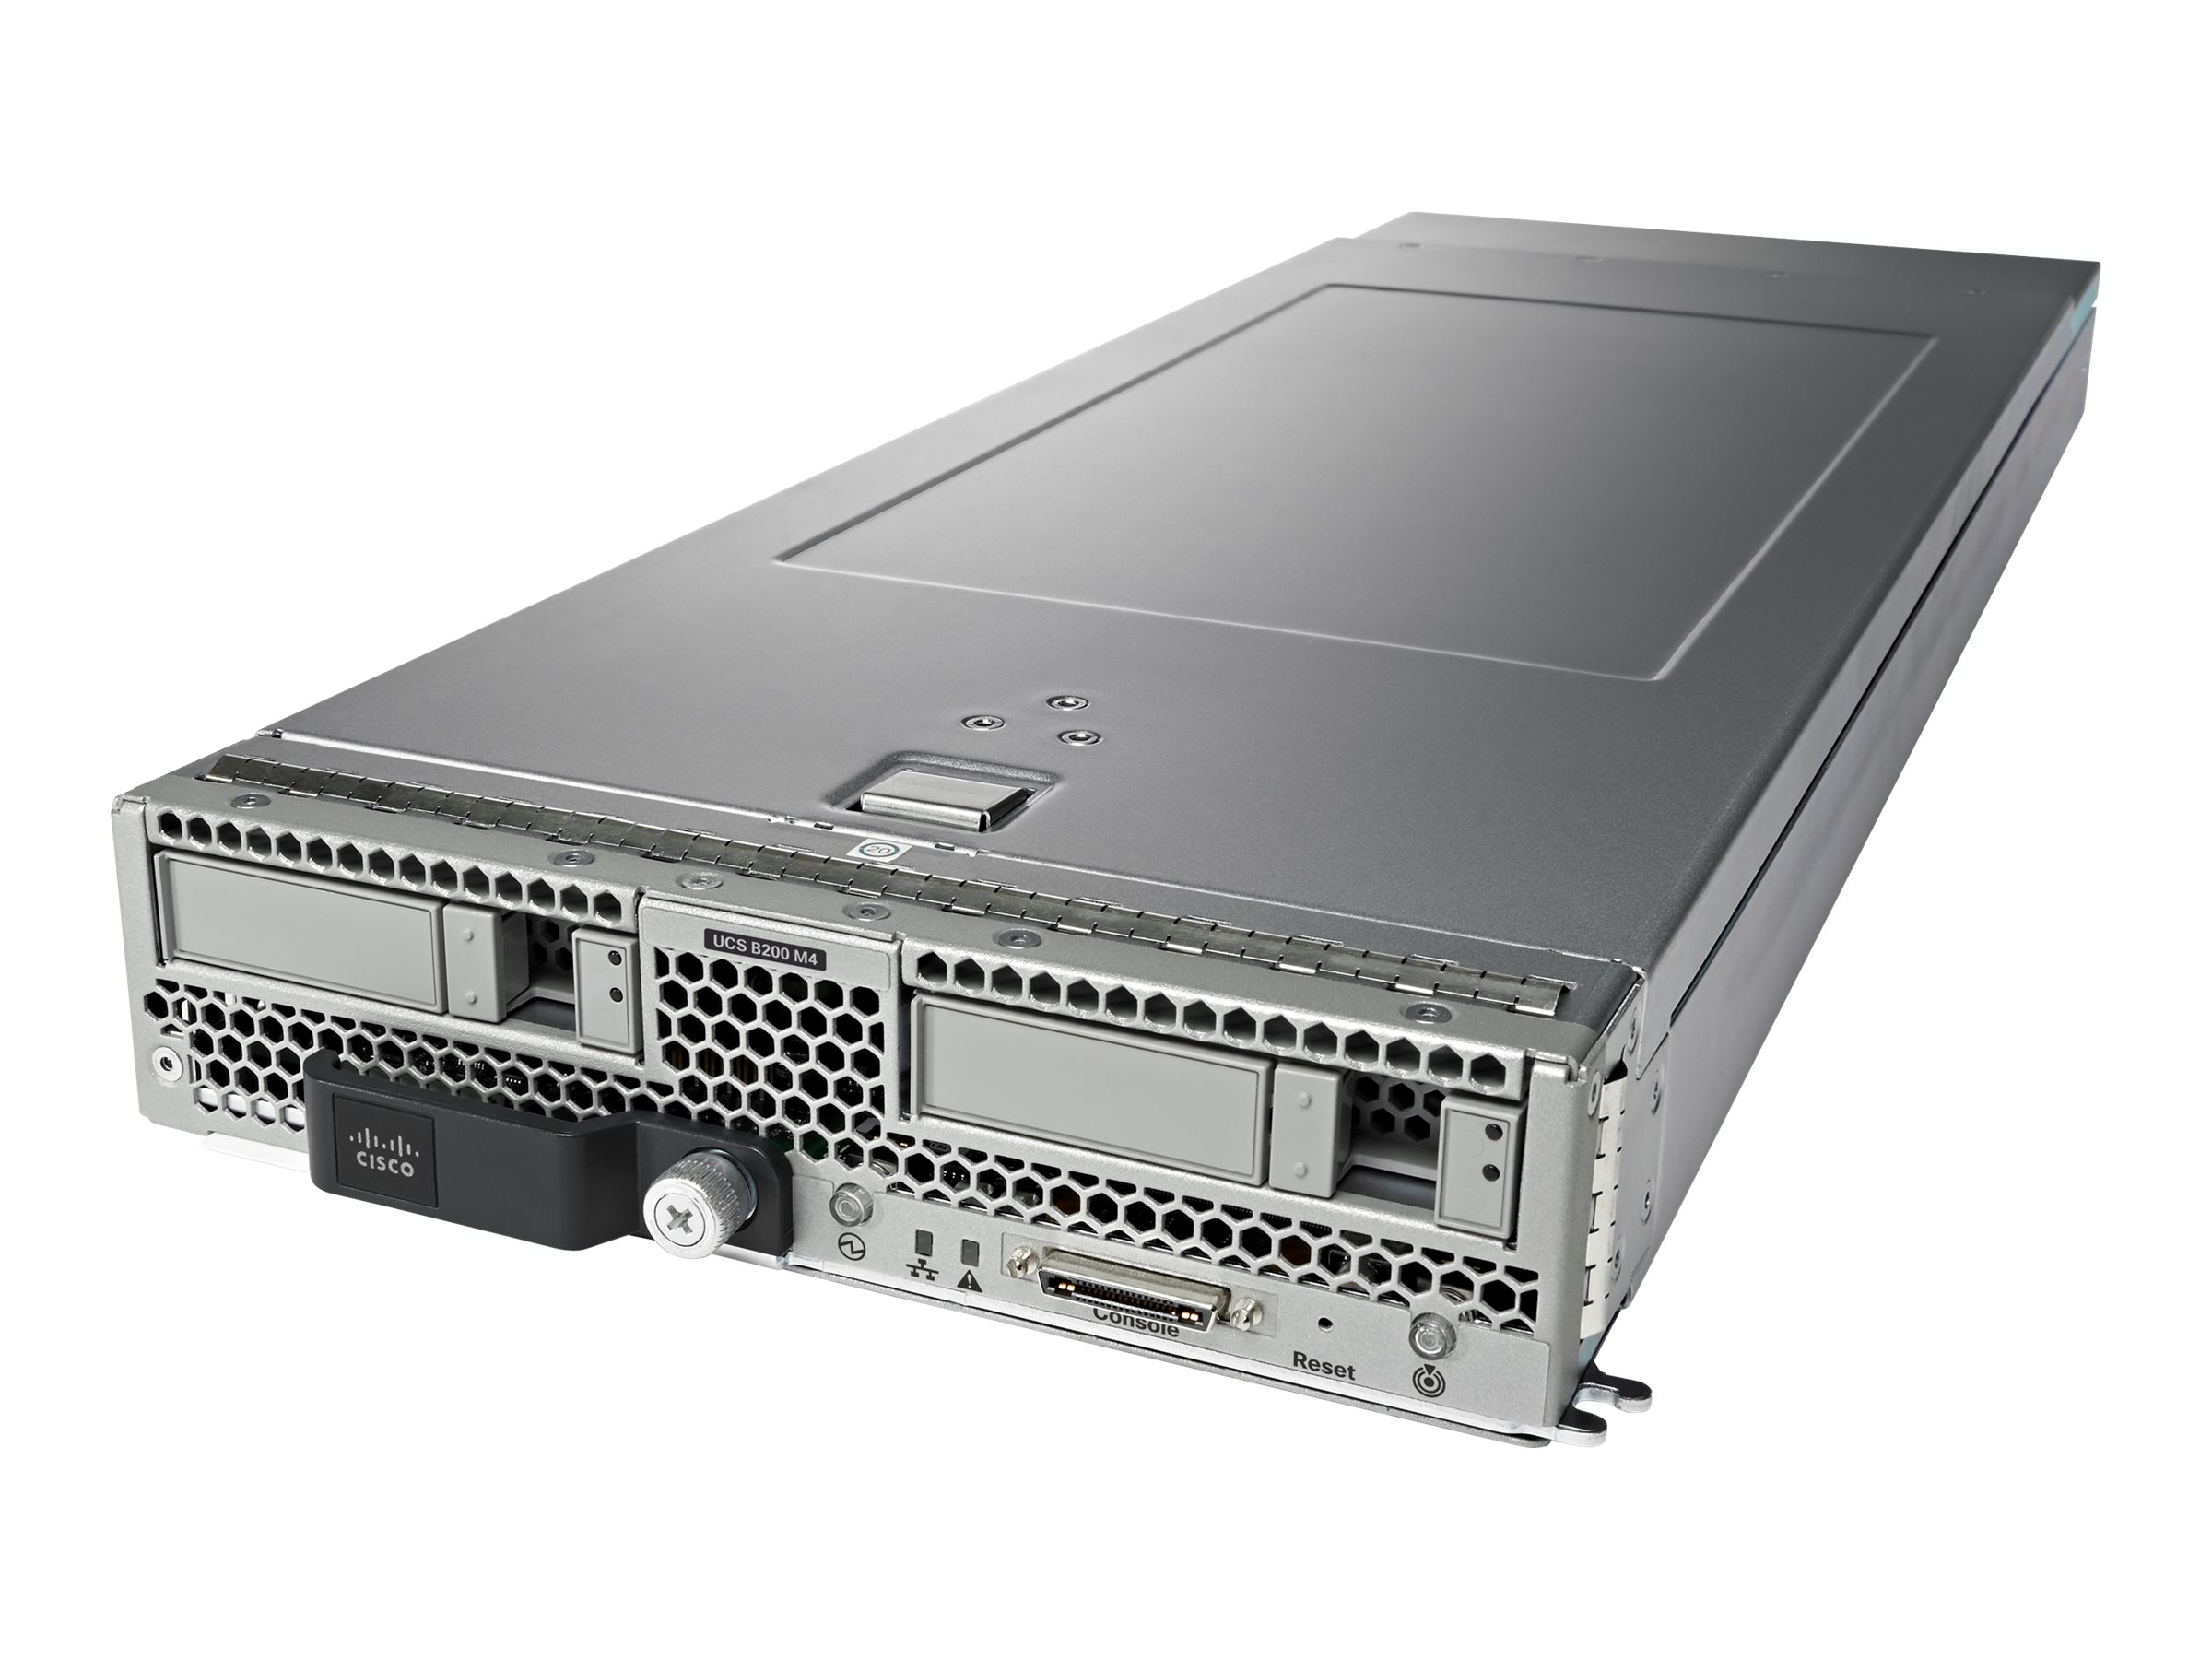 Cisco UCS B200 M4 STD2 Blade (2x)Xeon E5-2620 v3 8x16GB, UCS-SP-B200M4-S2T, 30930487, Servers - Blade